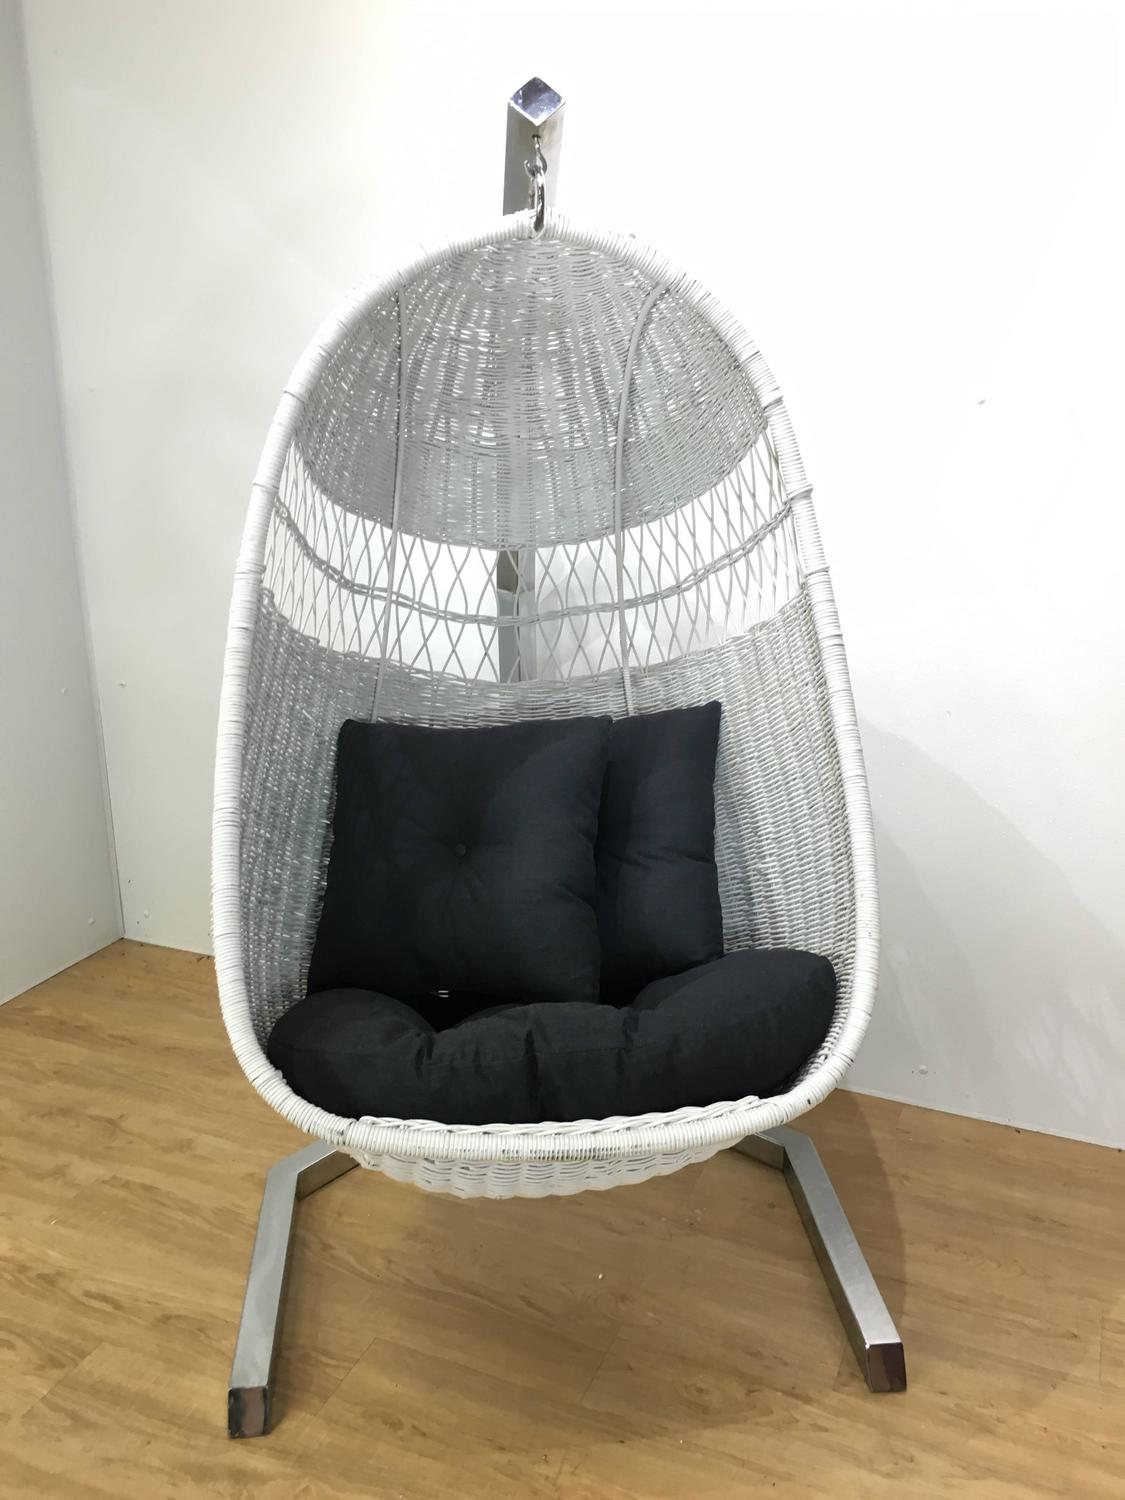 1970s Hanging Wicker Lounge Chair For Sale at 1stdibs